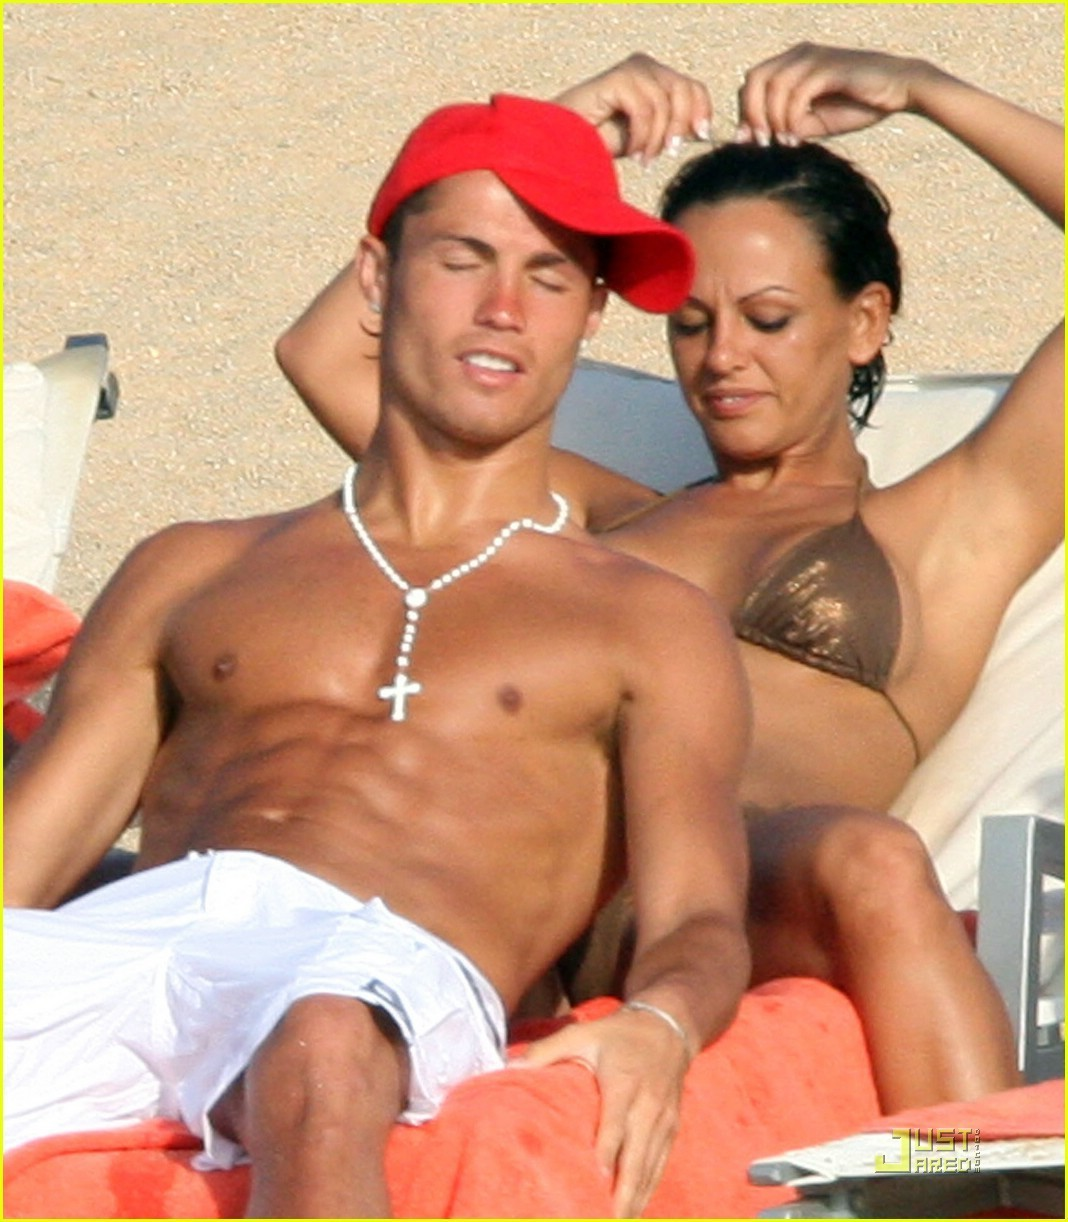 Ronaldo-and-Nerida-on-holiday-in-Italy-cristiano-ronaldo